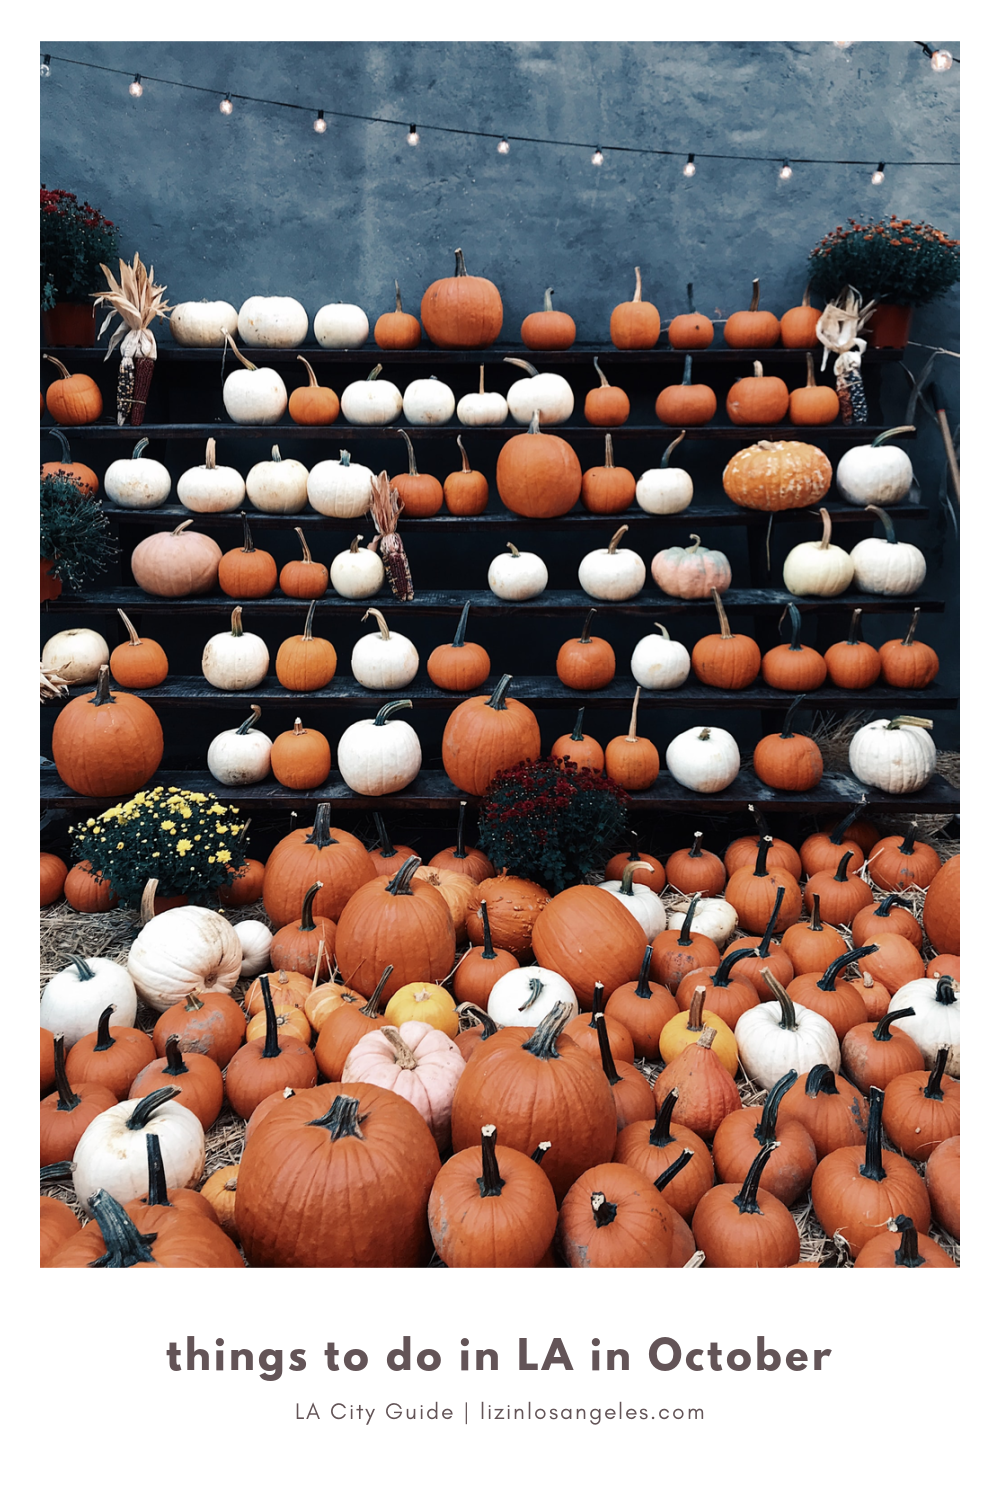 Top 5 Special Things to Do in LA in October When Social Distancing, a blog post by Liz in Los Angeles, Los Angeles Lifestyle Blogger, an image of pumpkins